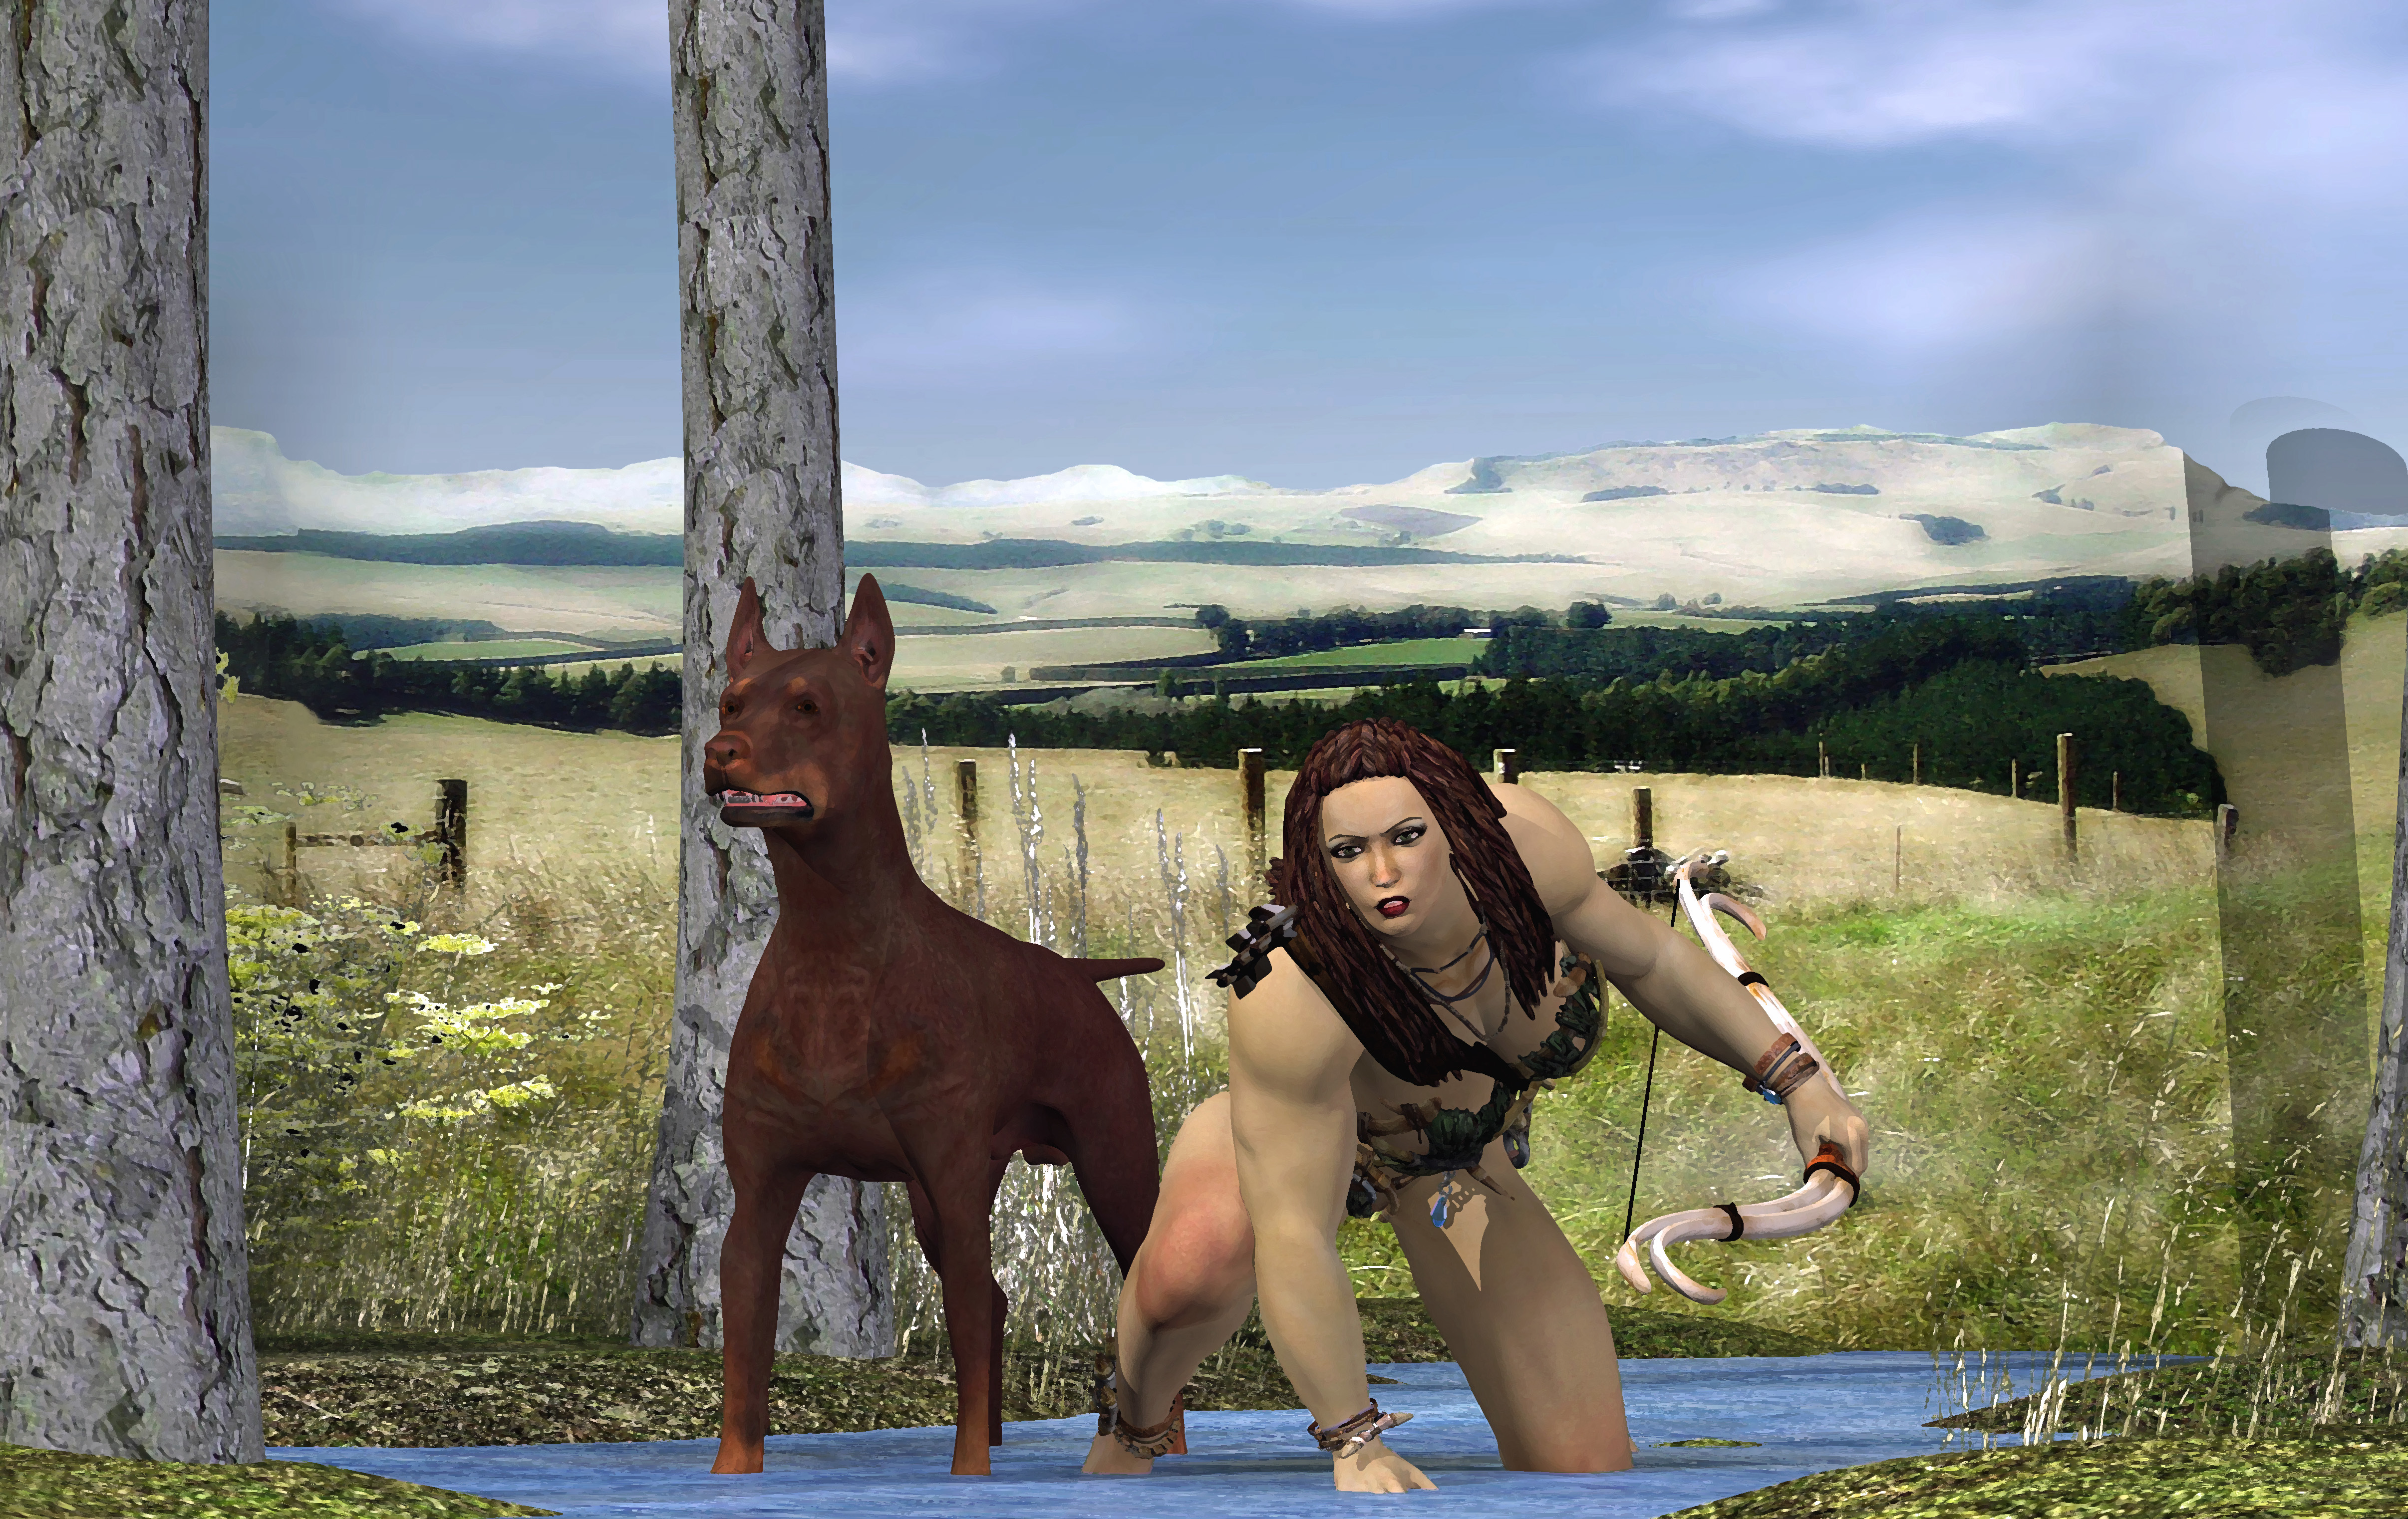 Women and Beast #11: On the Hunt